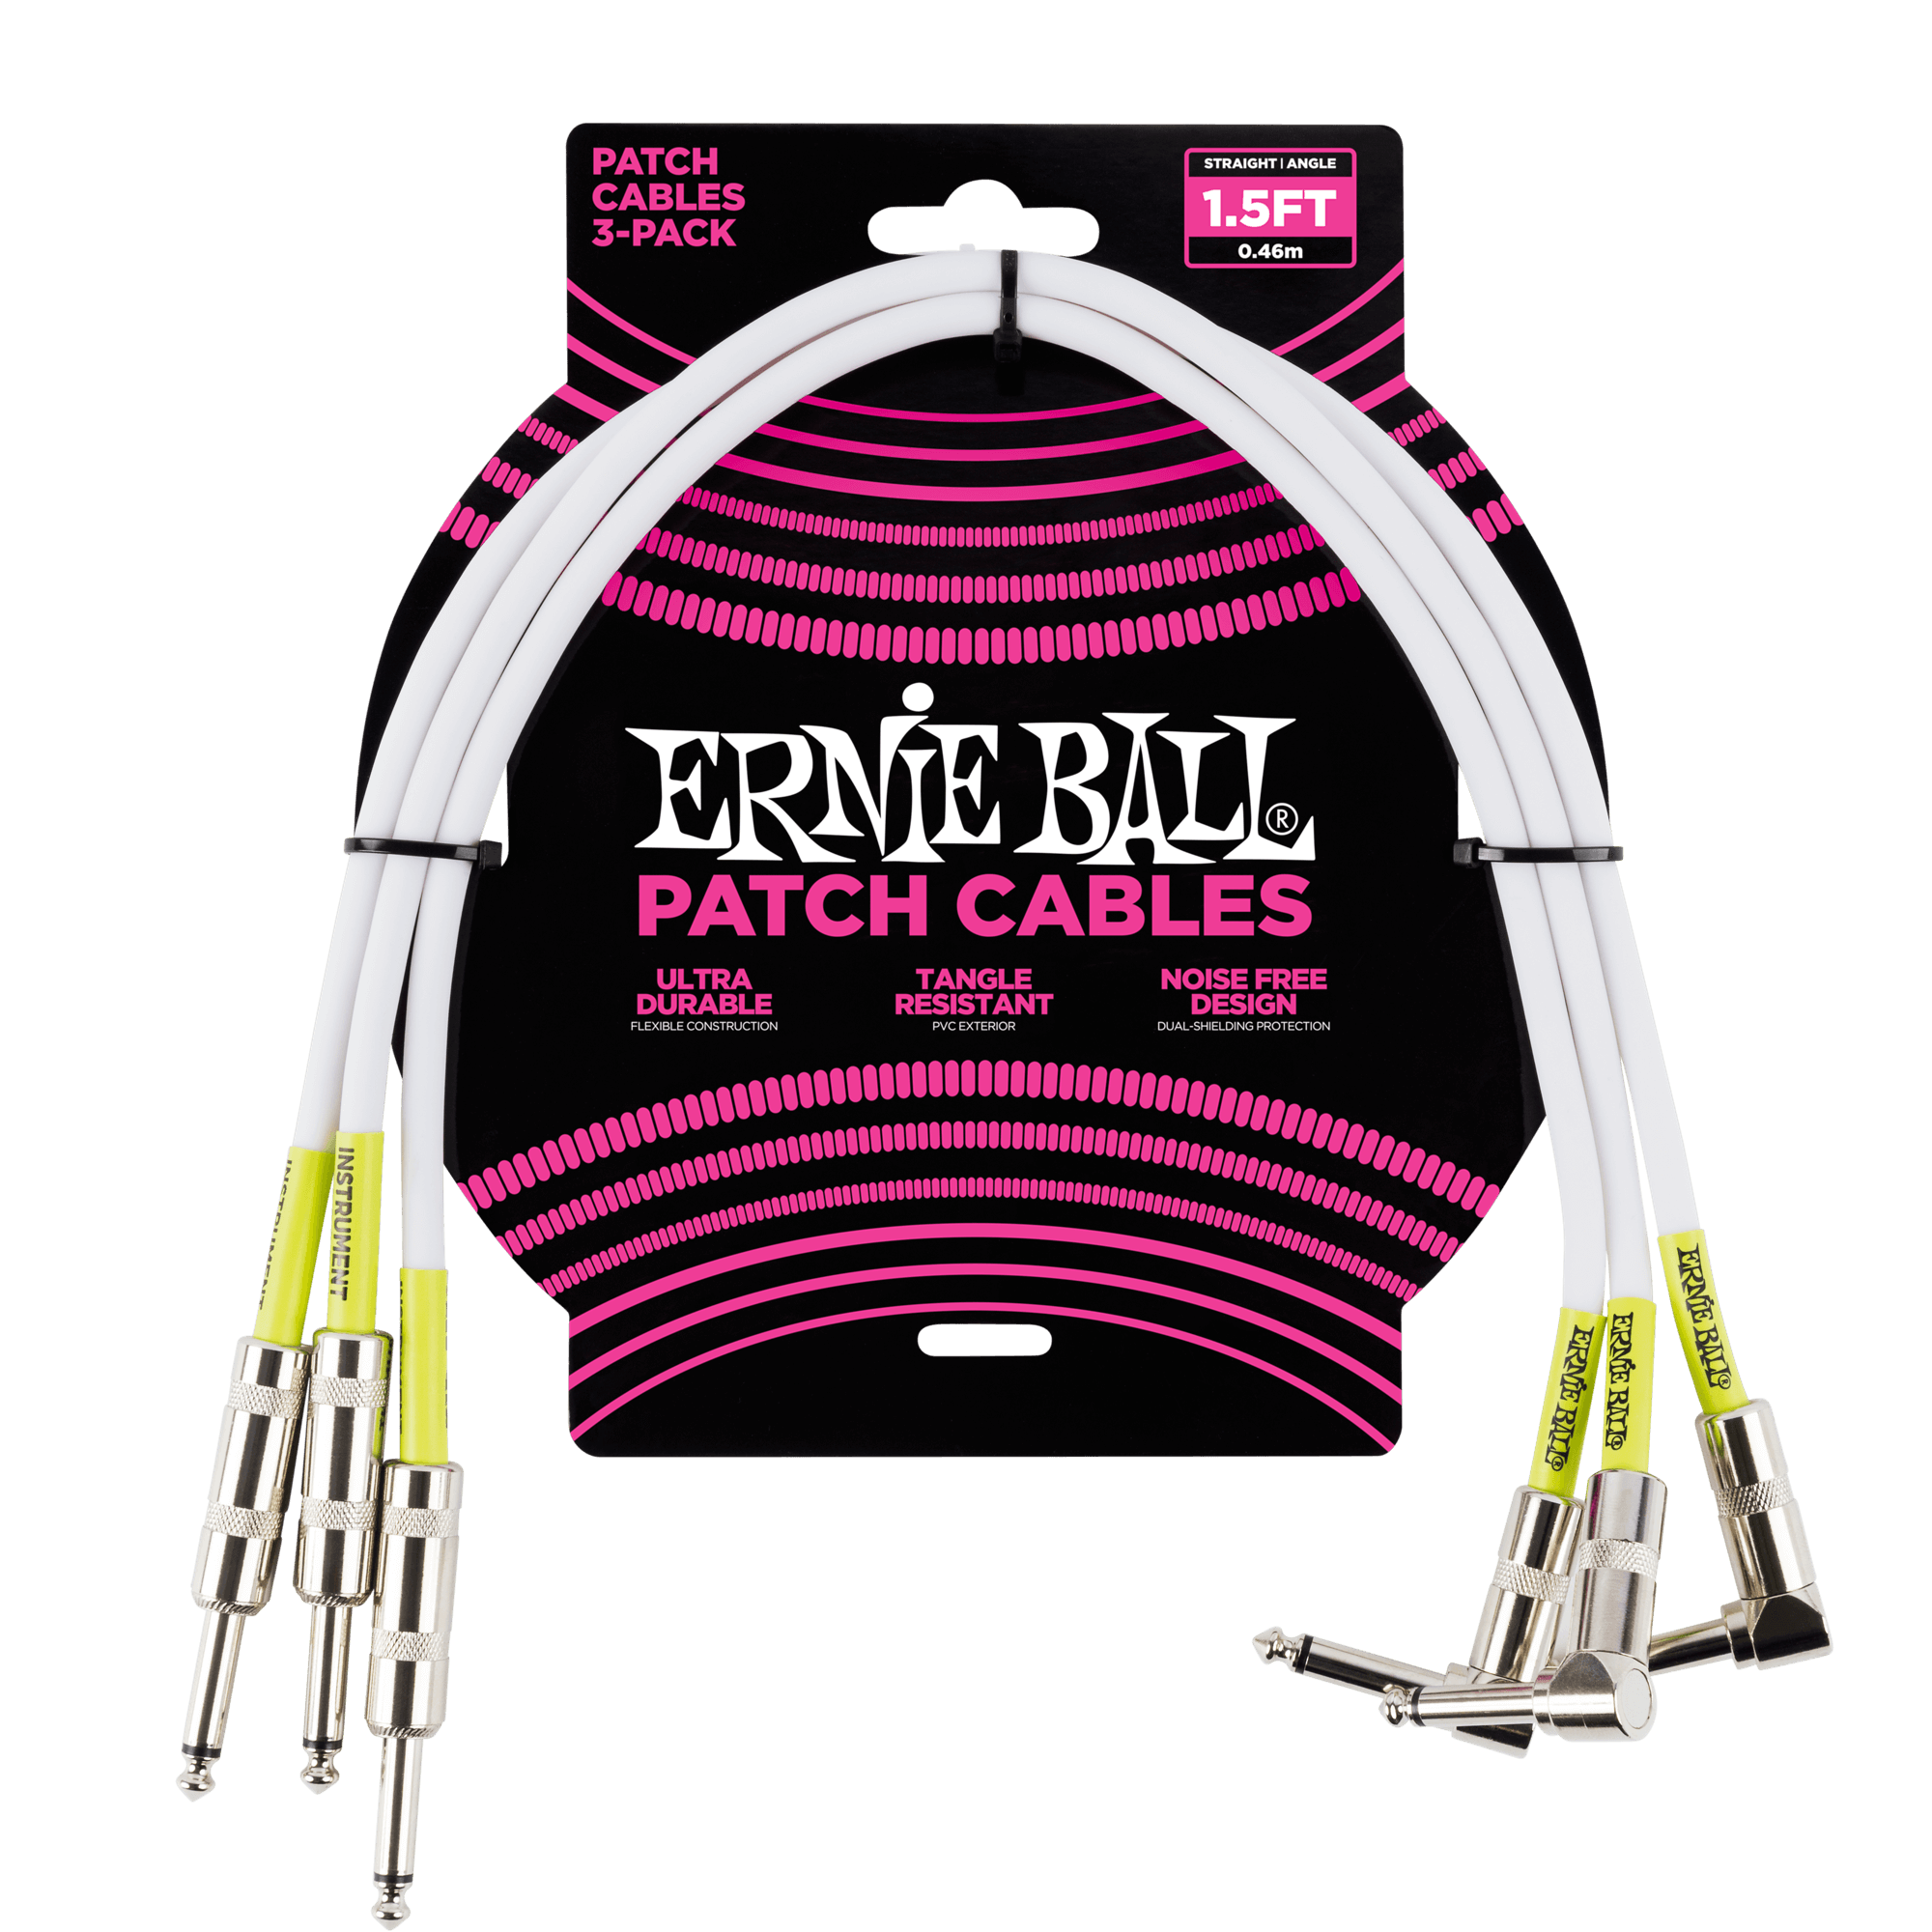 Lead 6059 Ernie Ball 6 inch 3-Pack Black Pancake Jacks Patch Cables